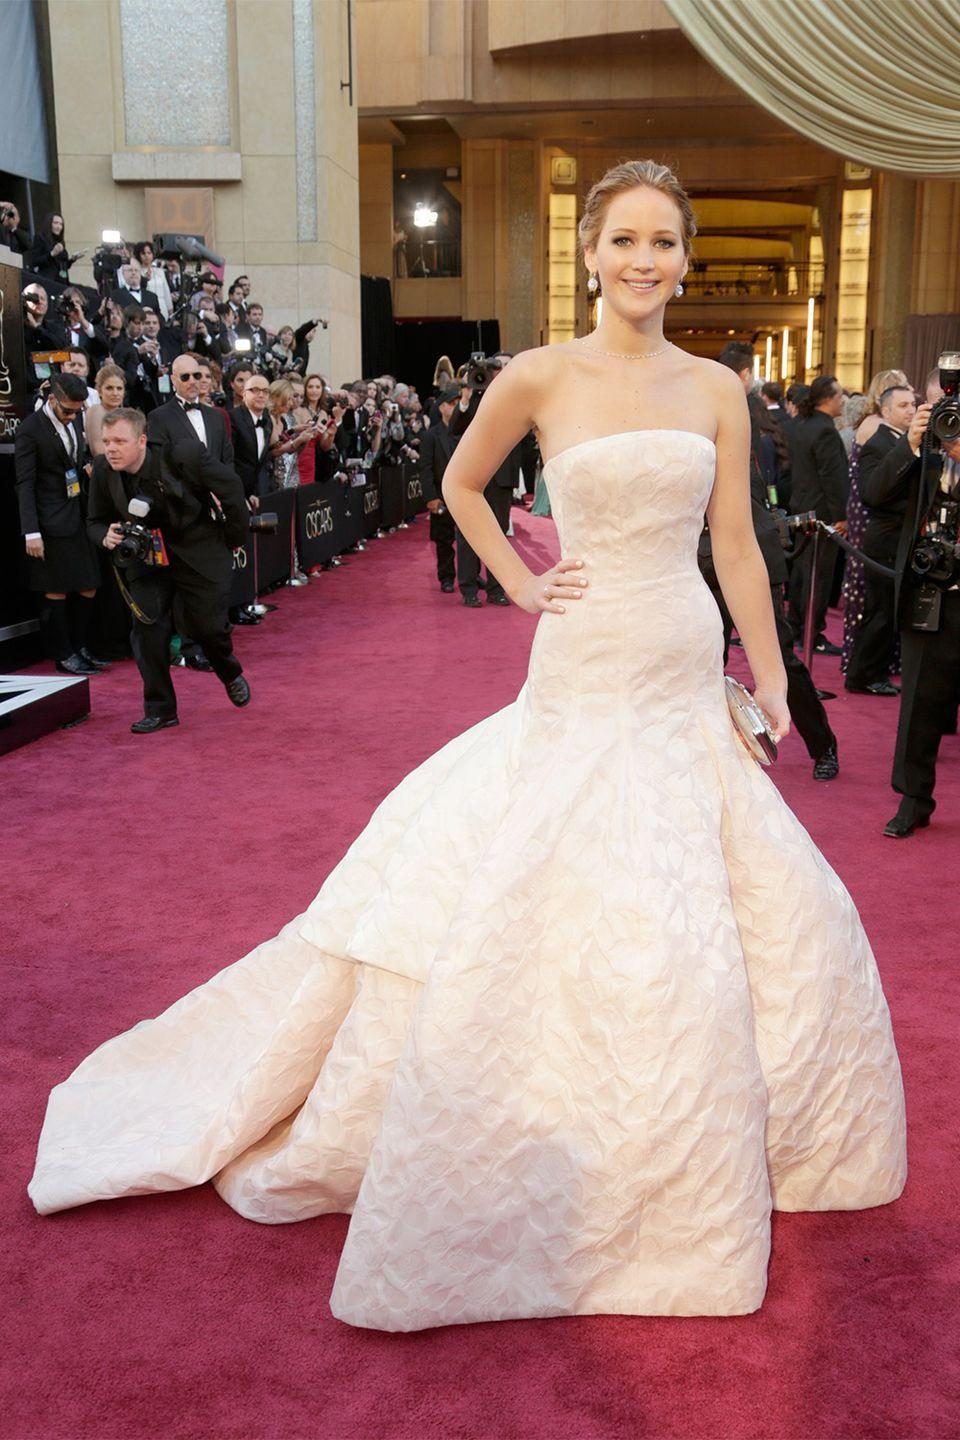 <p>Since becoming the face of Dior in 2012, the French brand has dressed Jennifer Lawrence for all the important occasions in her life—including her 2013 Oscar win. And who could forget her graceful fall as she made her way up to the stage to accept her award?</p>